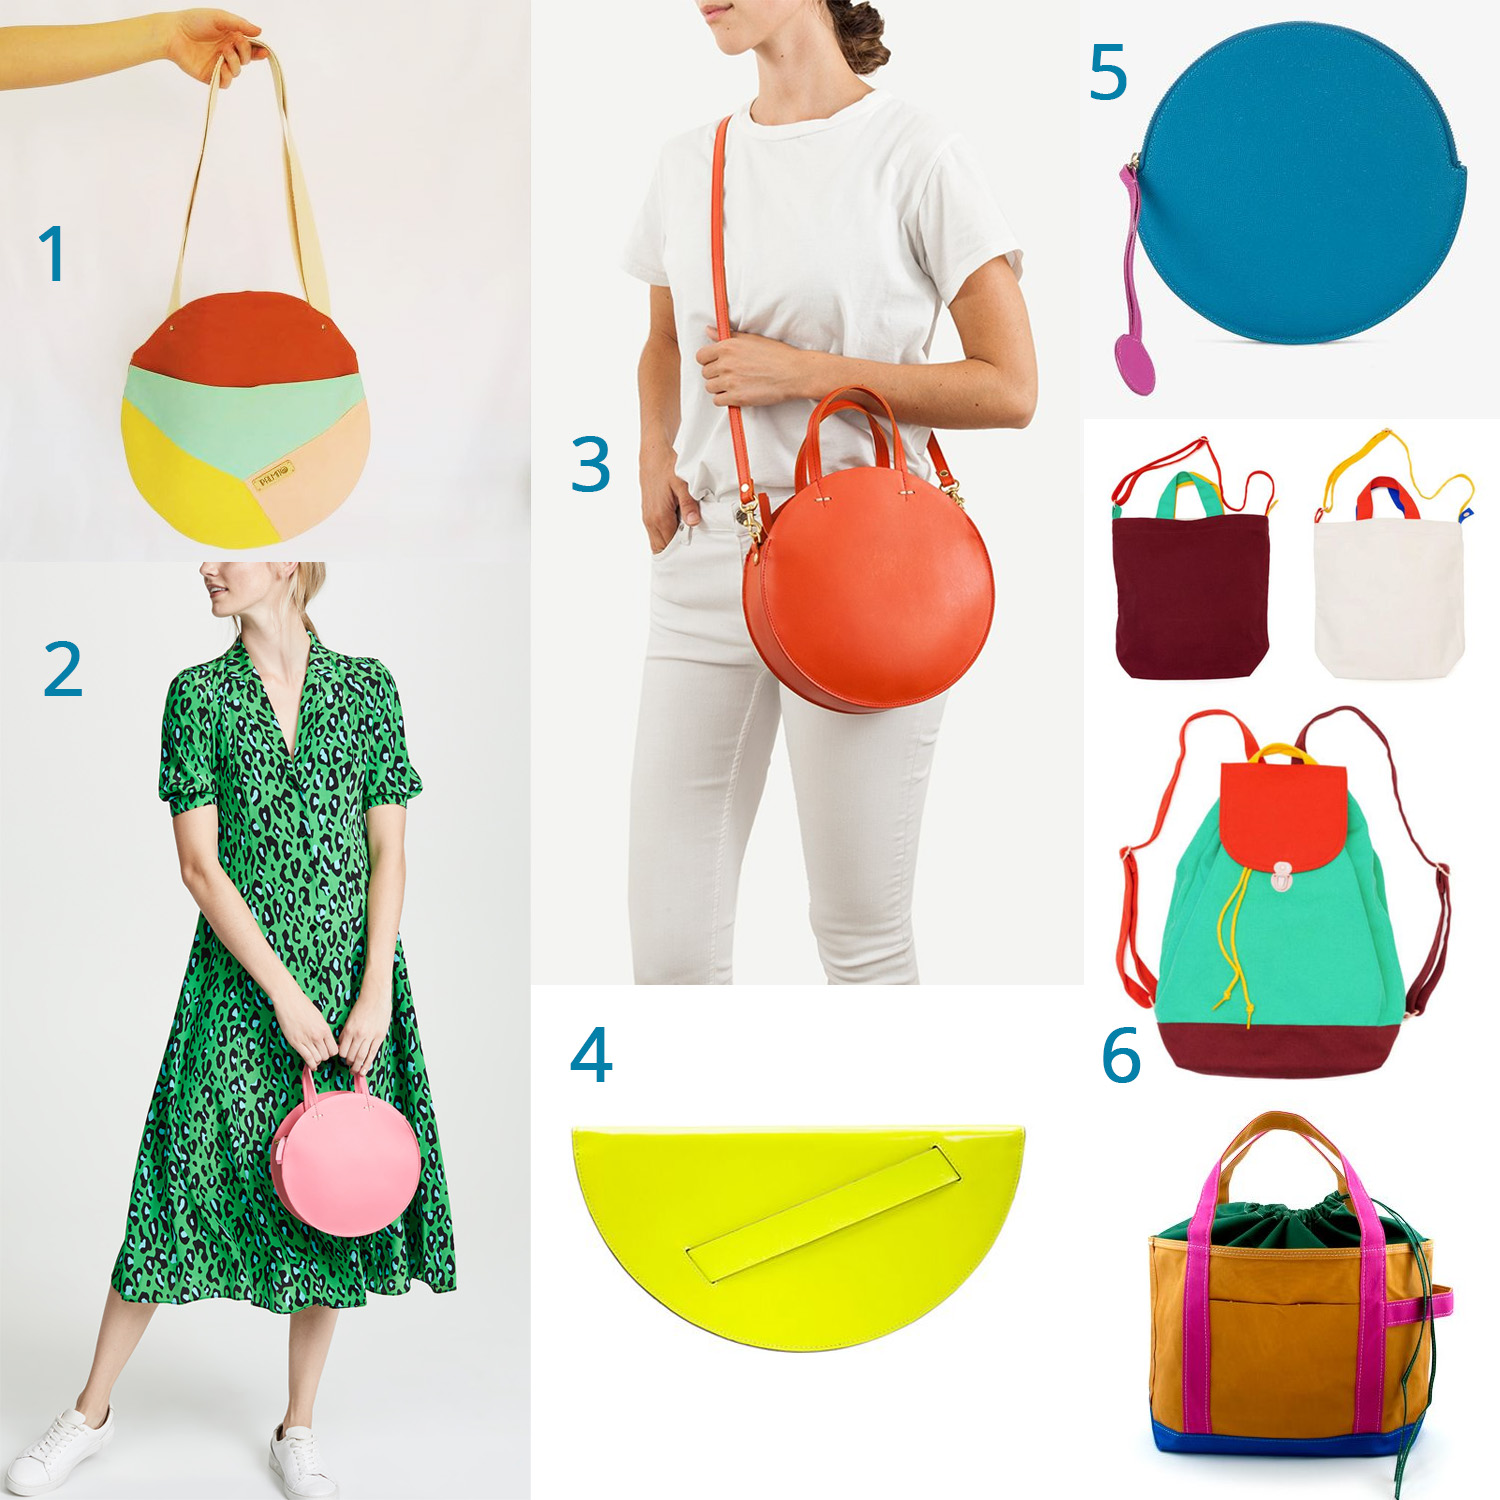 1: colorblocking  /  2: bold color mixing  /  3: bold colors that go with everything  / 4: neon (because you can!)  5: unexpected color  / 6: not a circle bag, but more colorblocking inspiration (please, someone indulge me)